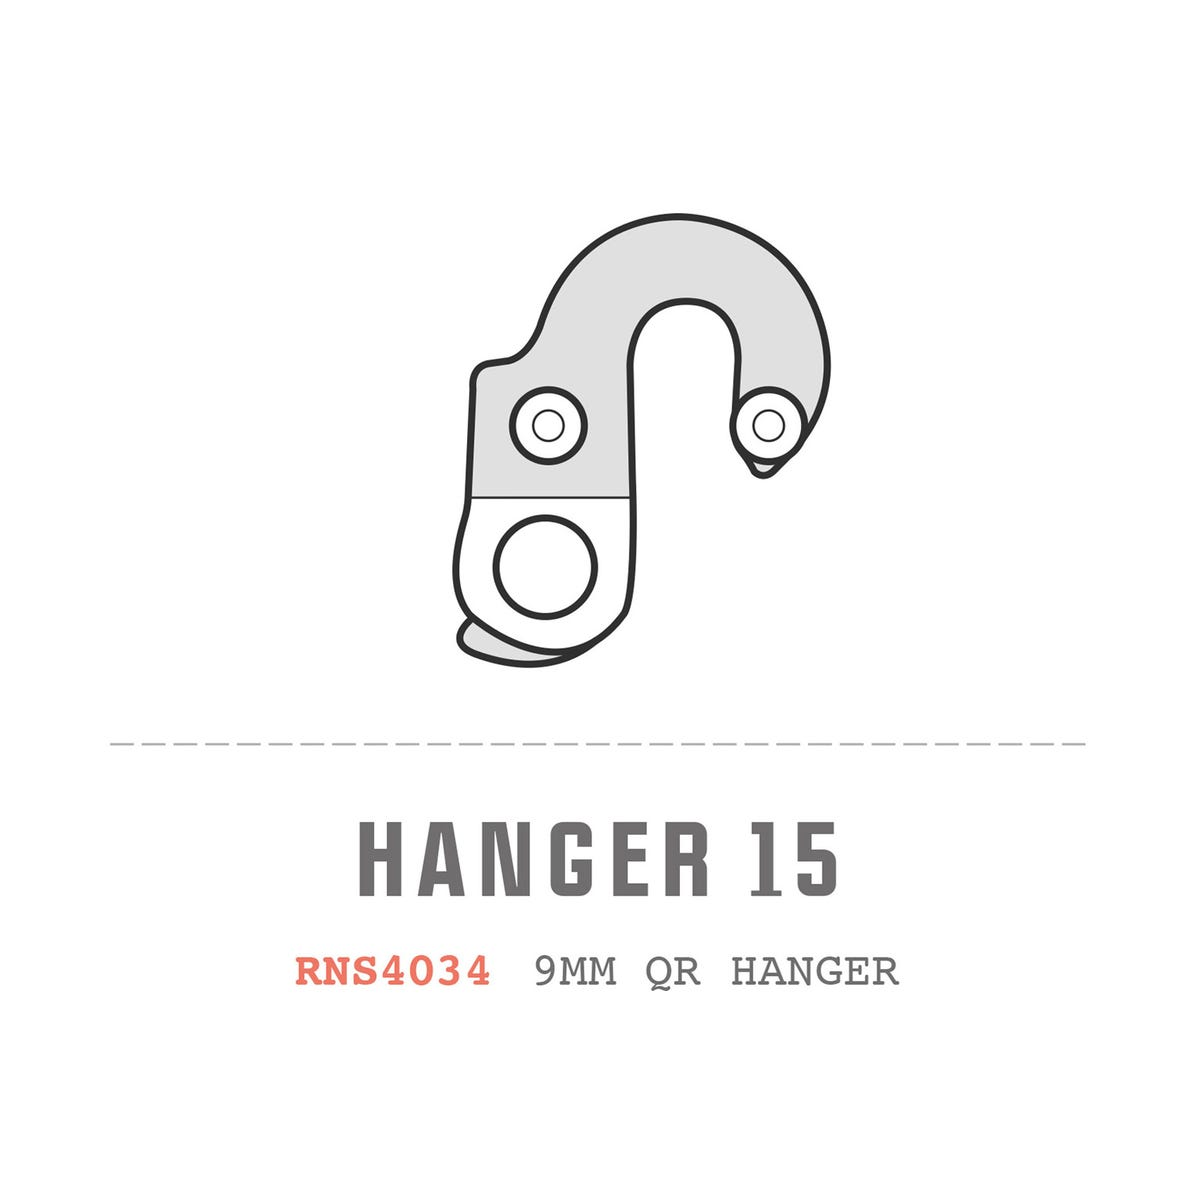 Saracen Hanger 15 fits: All Tufftrax 2012 Models